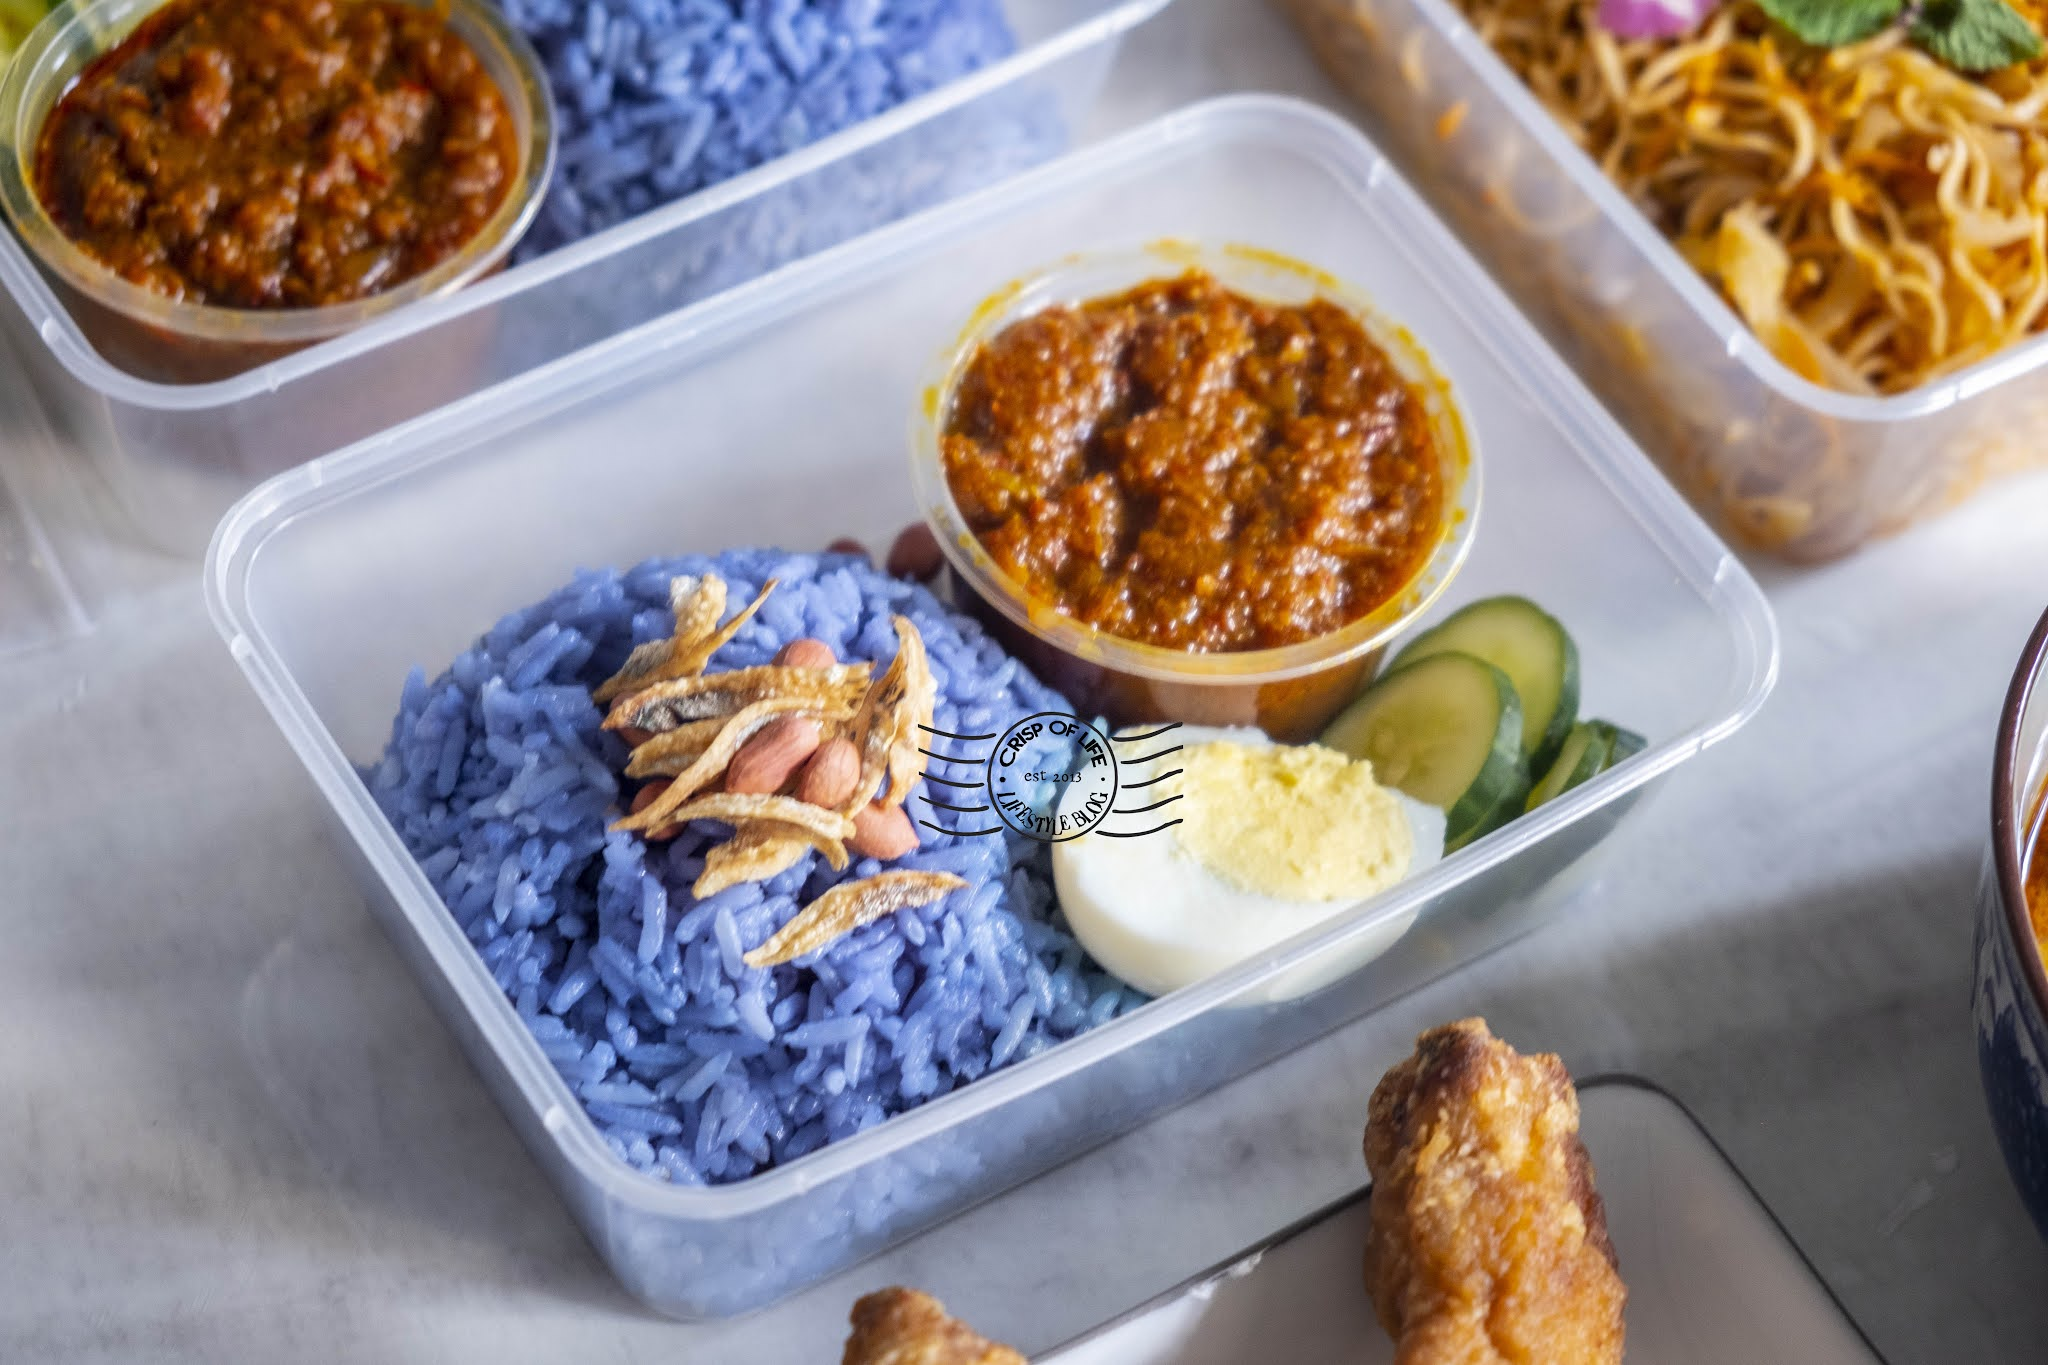 Penang Homecook - Mommy's Kitchen Penang with Bak Zhang Available All Day